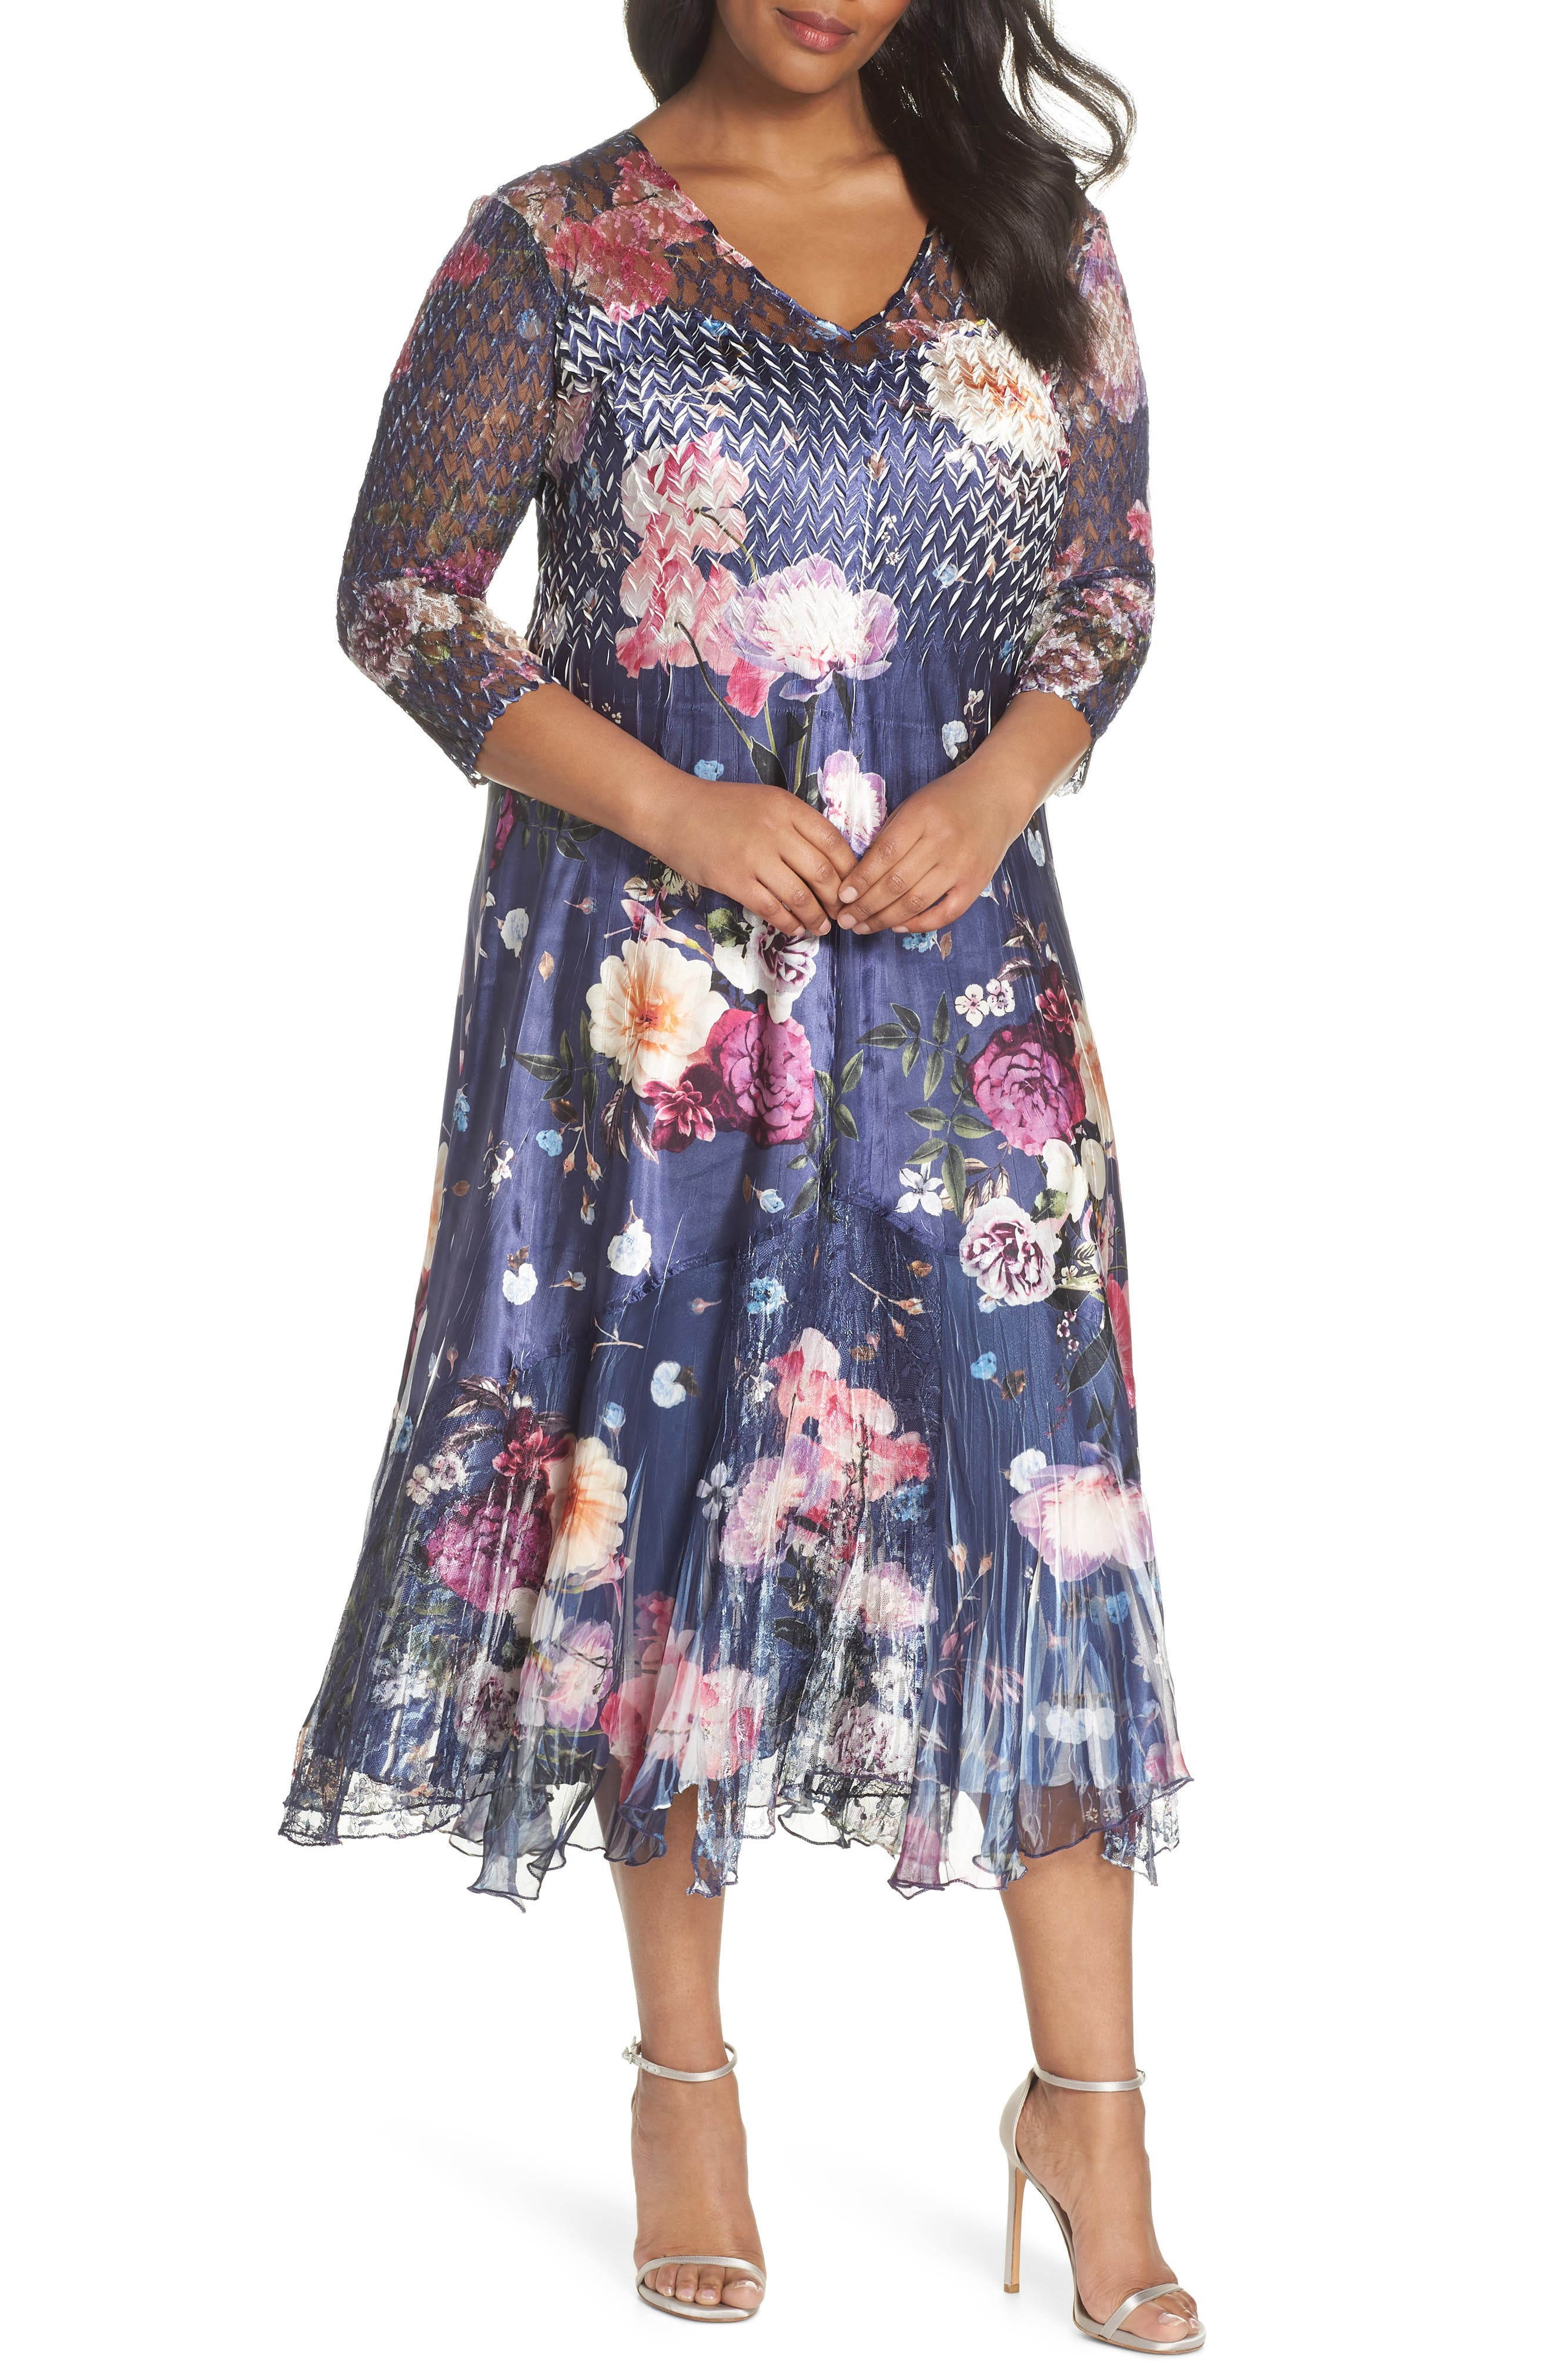 Koramov Floral Print Lace Inset Dress,                         Main,                         color, Velvet Bouquet